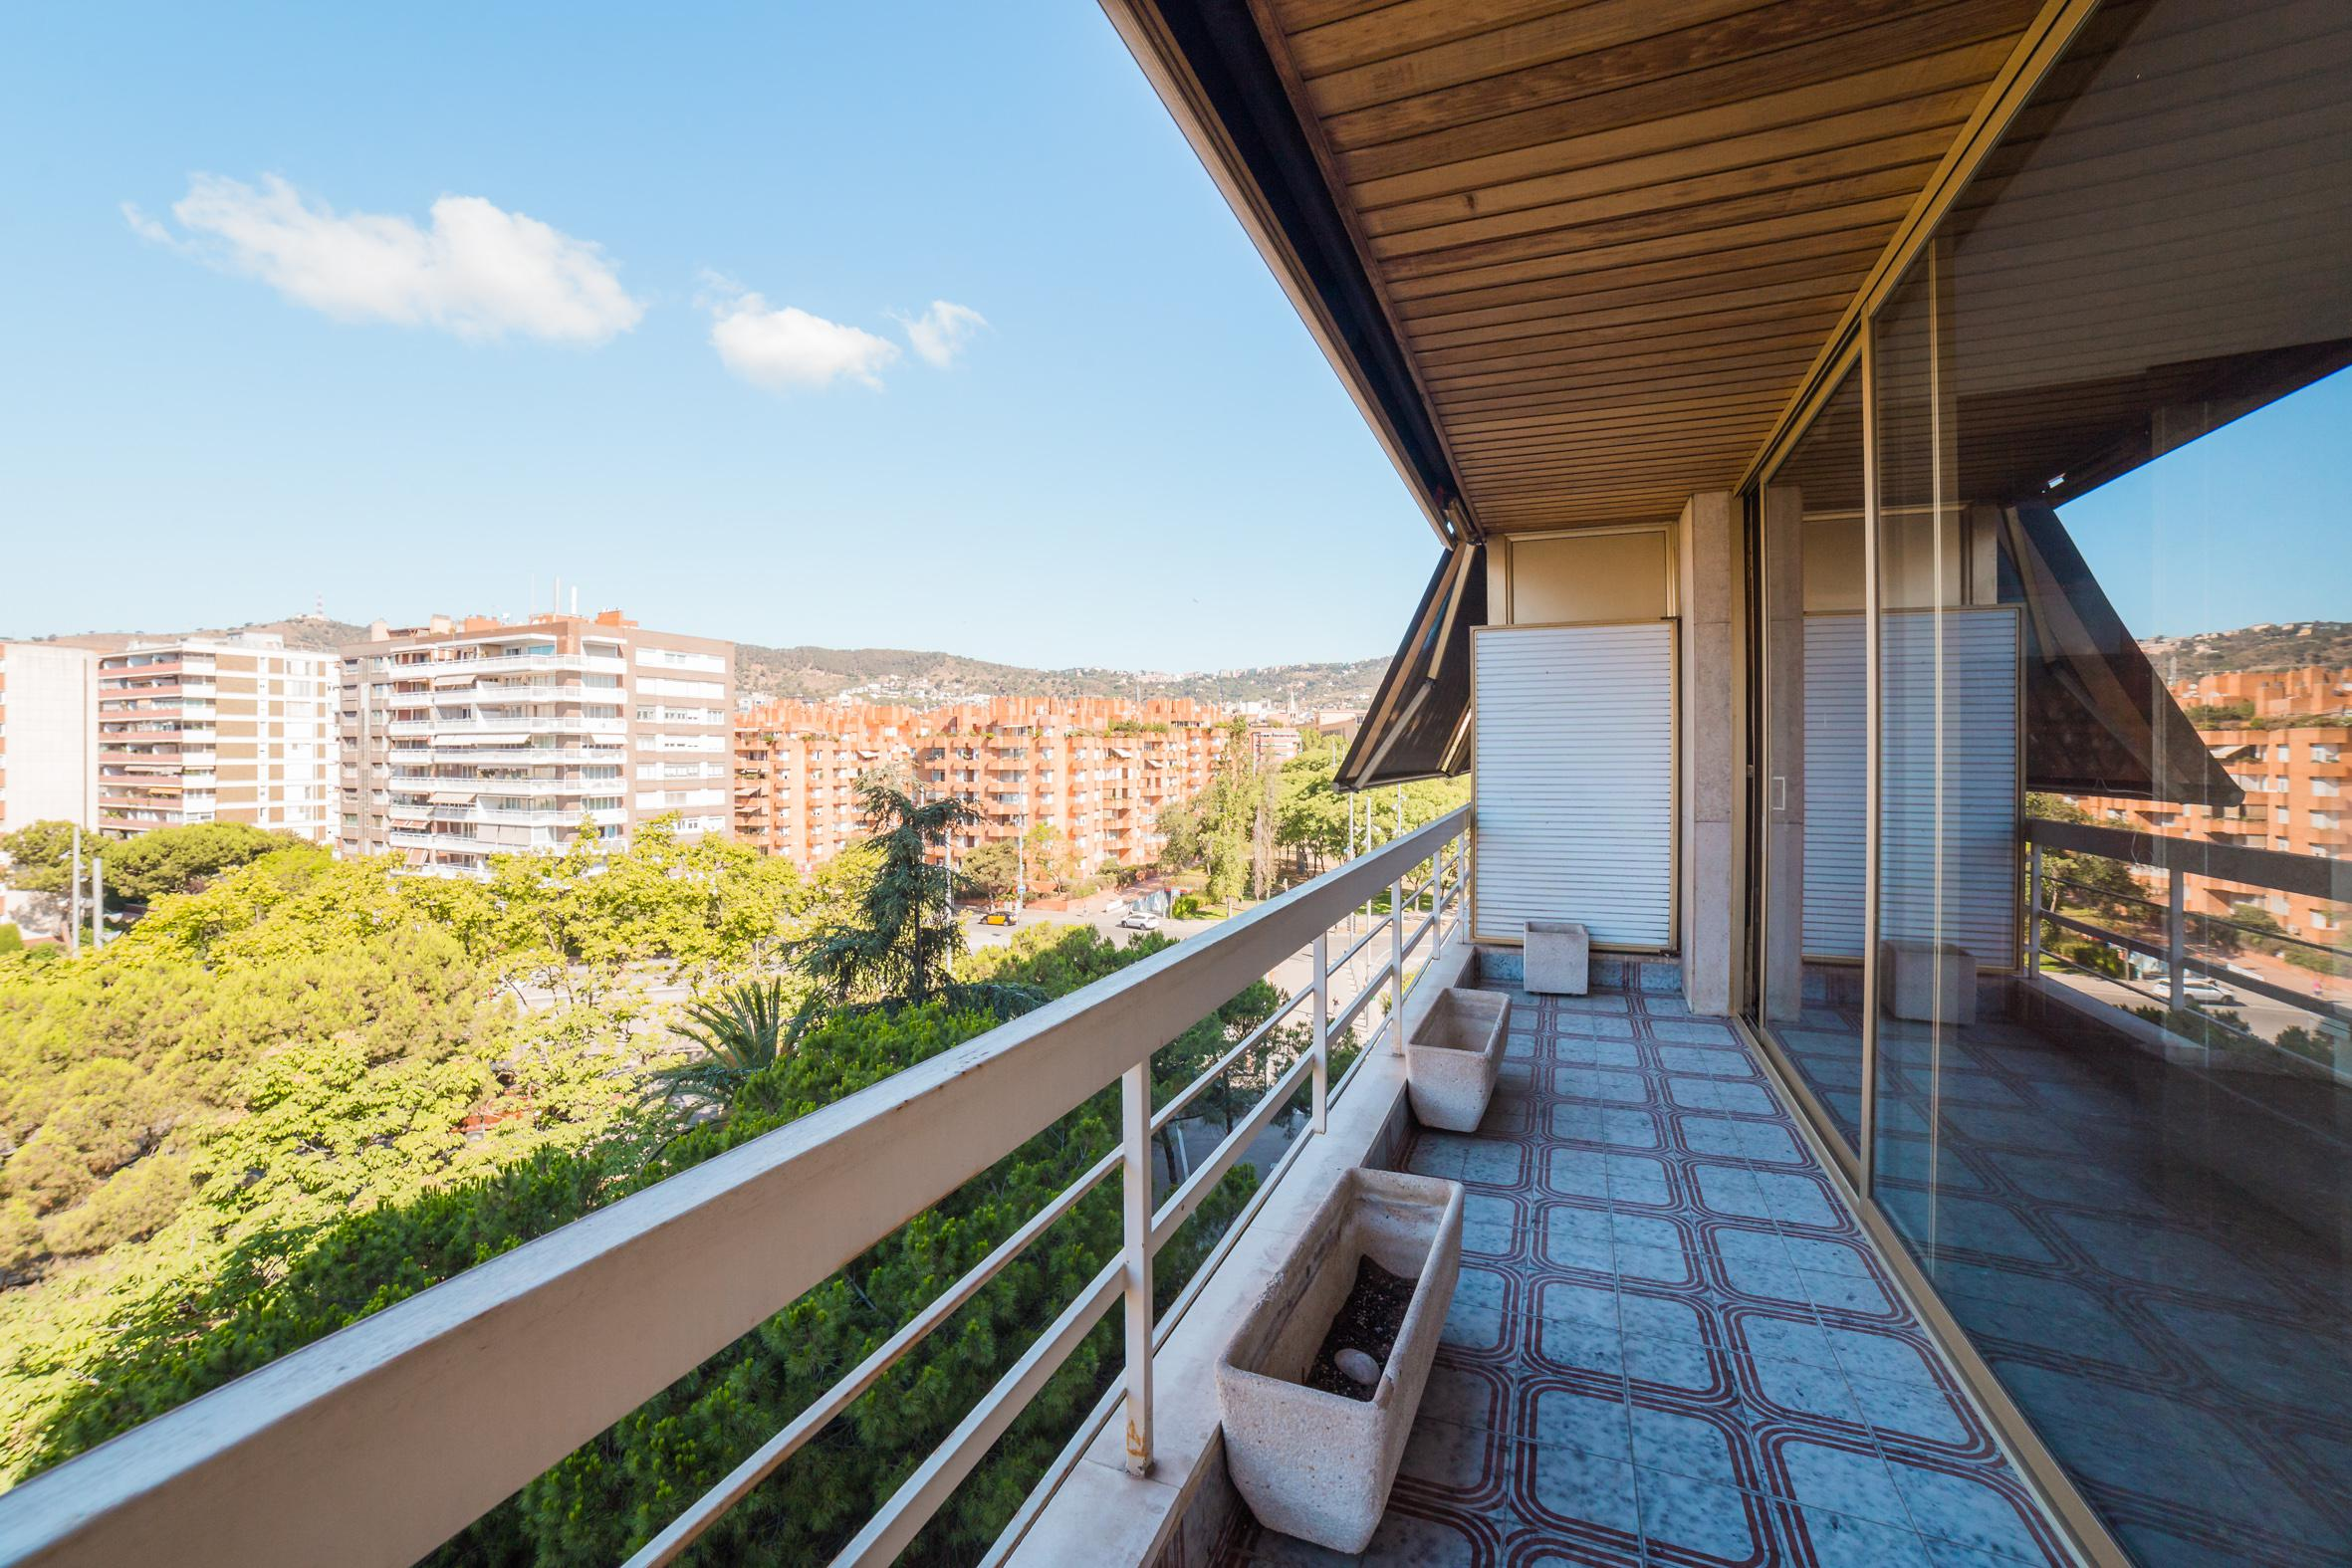 248988 Flat for sale in Les Corts, Les Corts 9